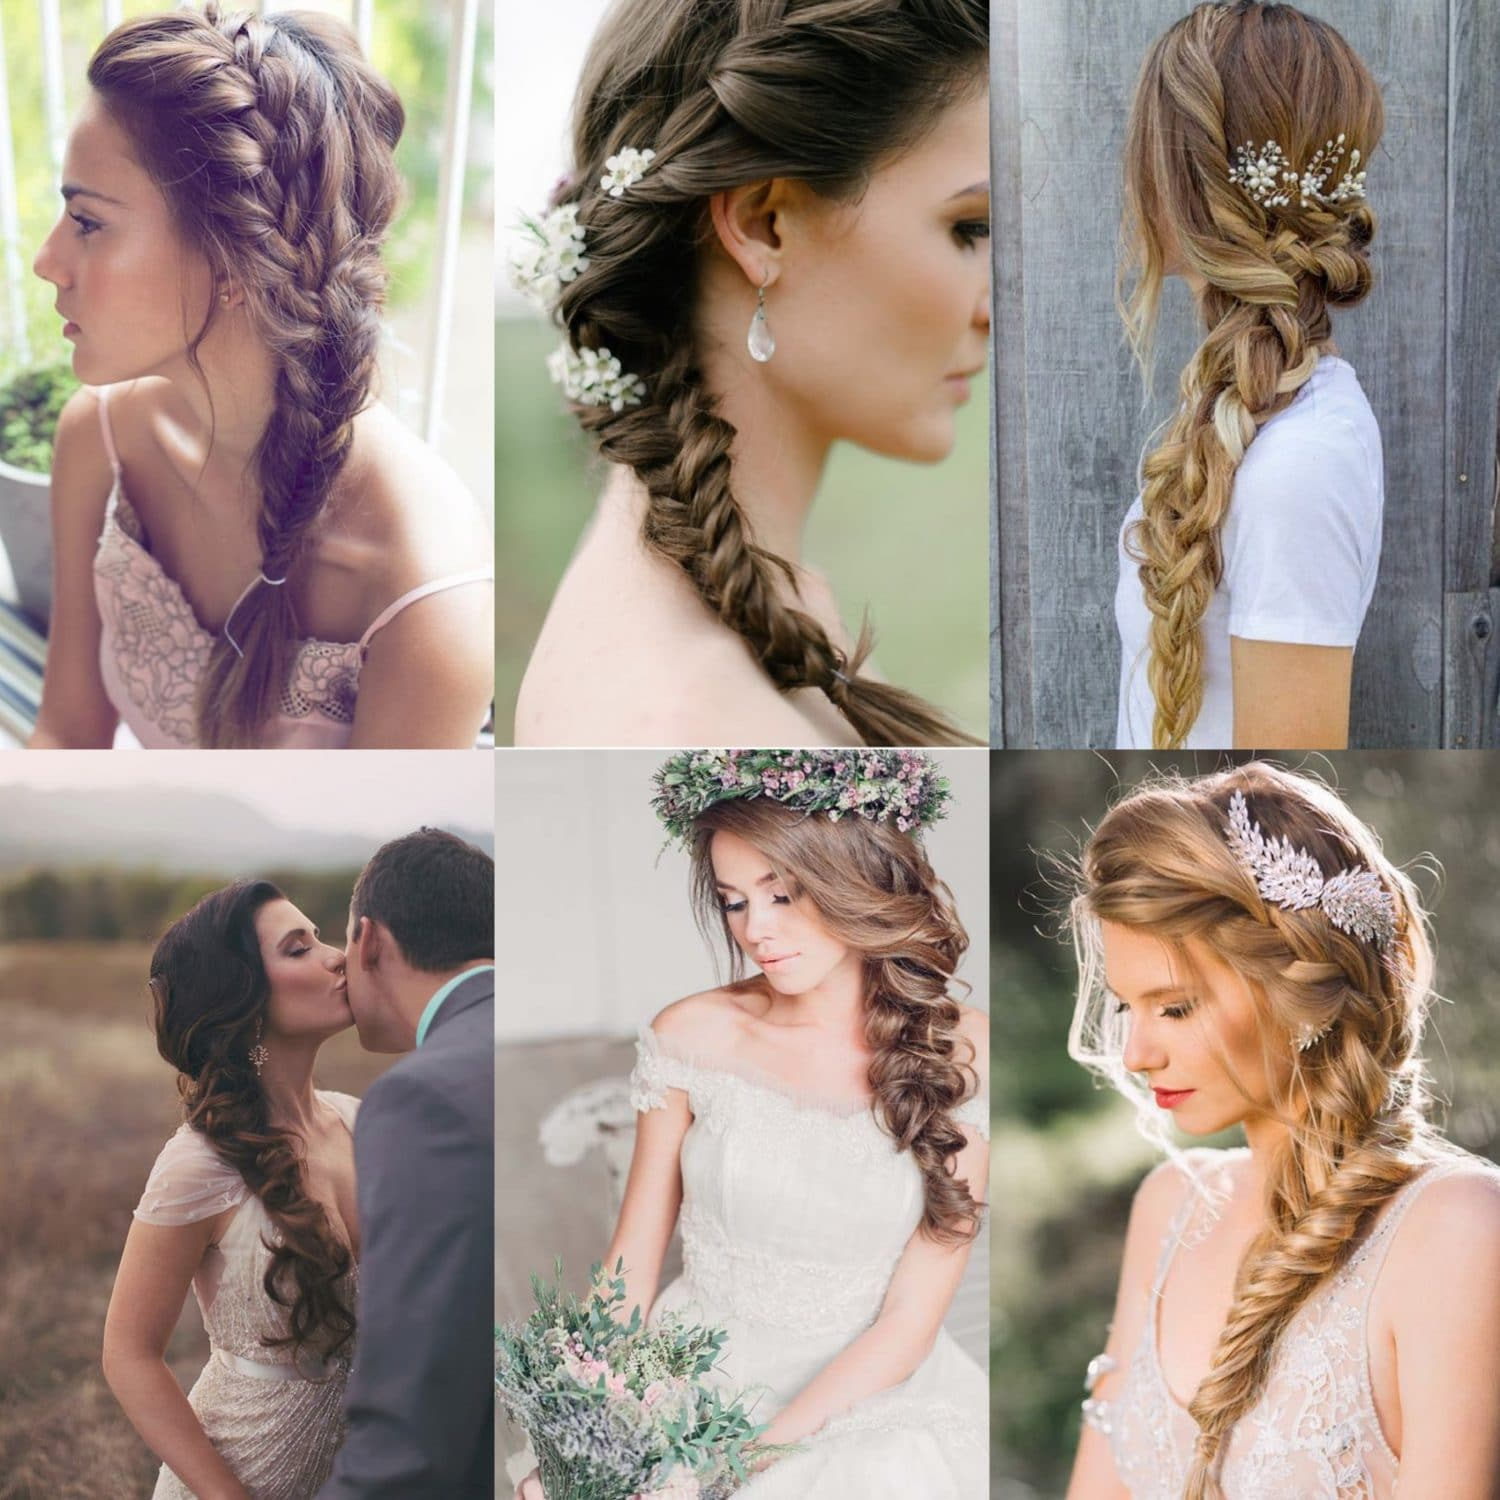 Wedding Hairstyle On The Side: Capesthorne Hall And Weddings